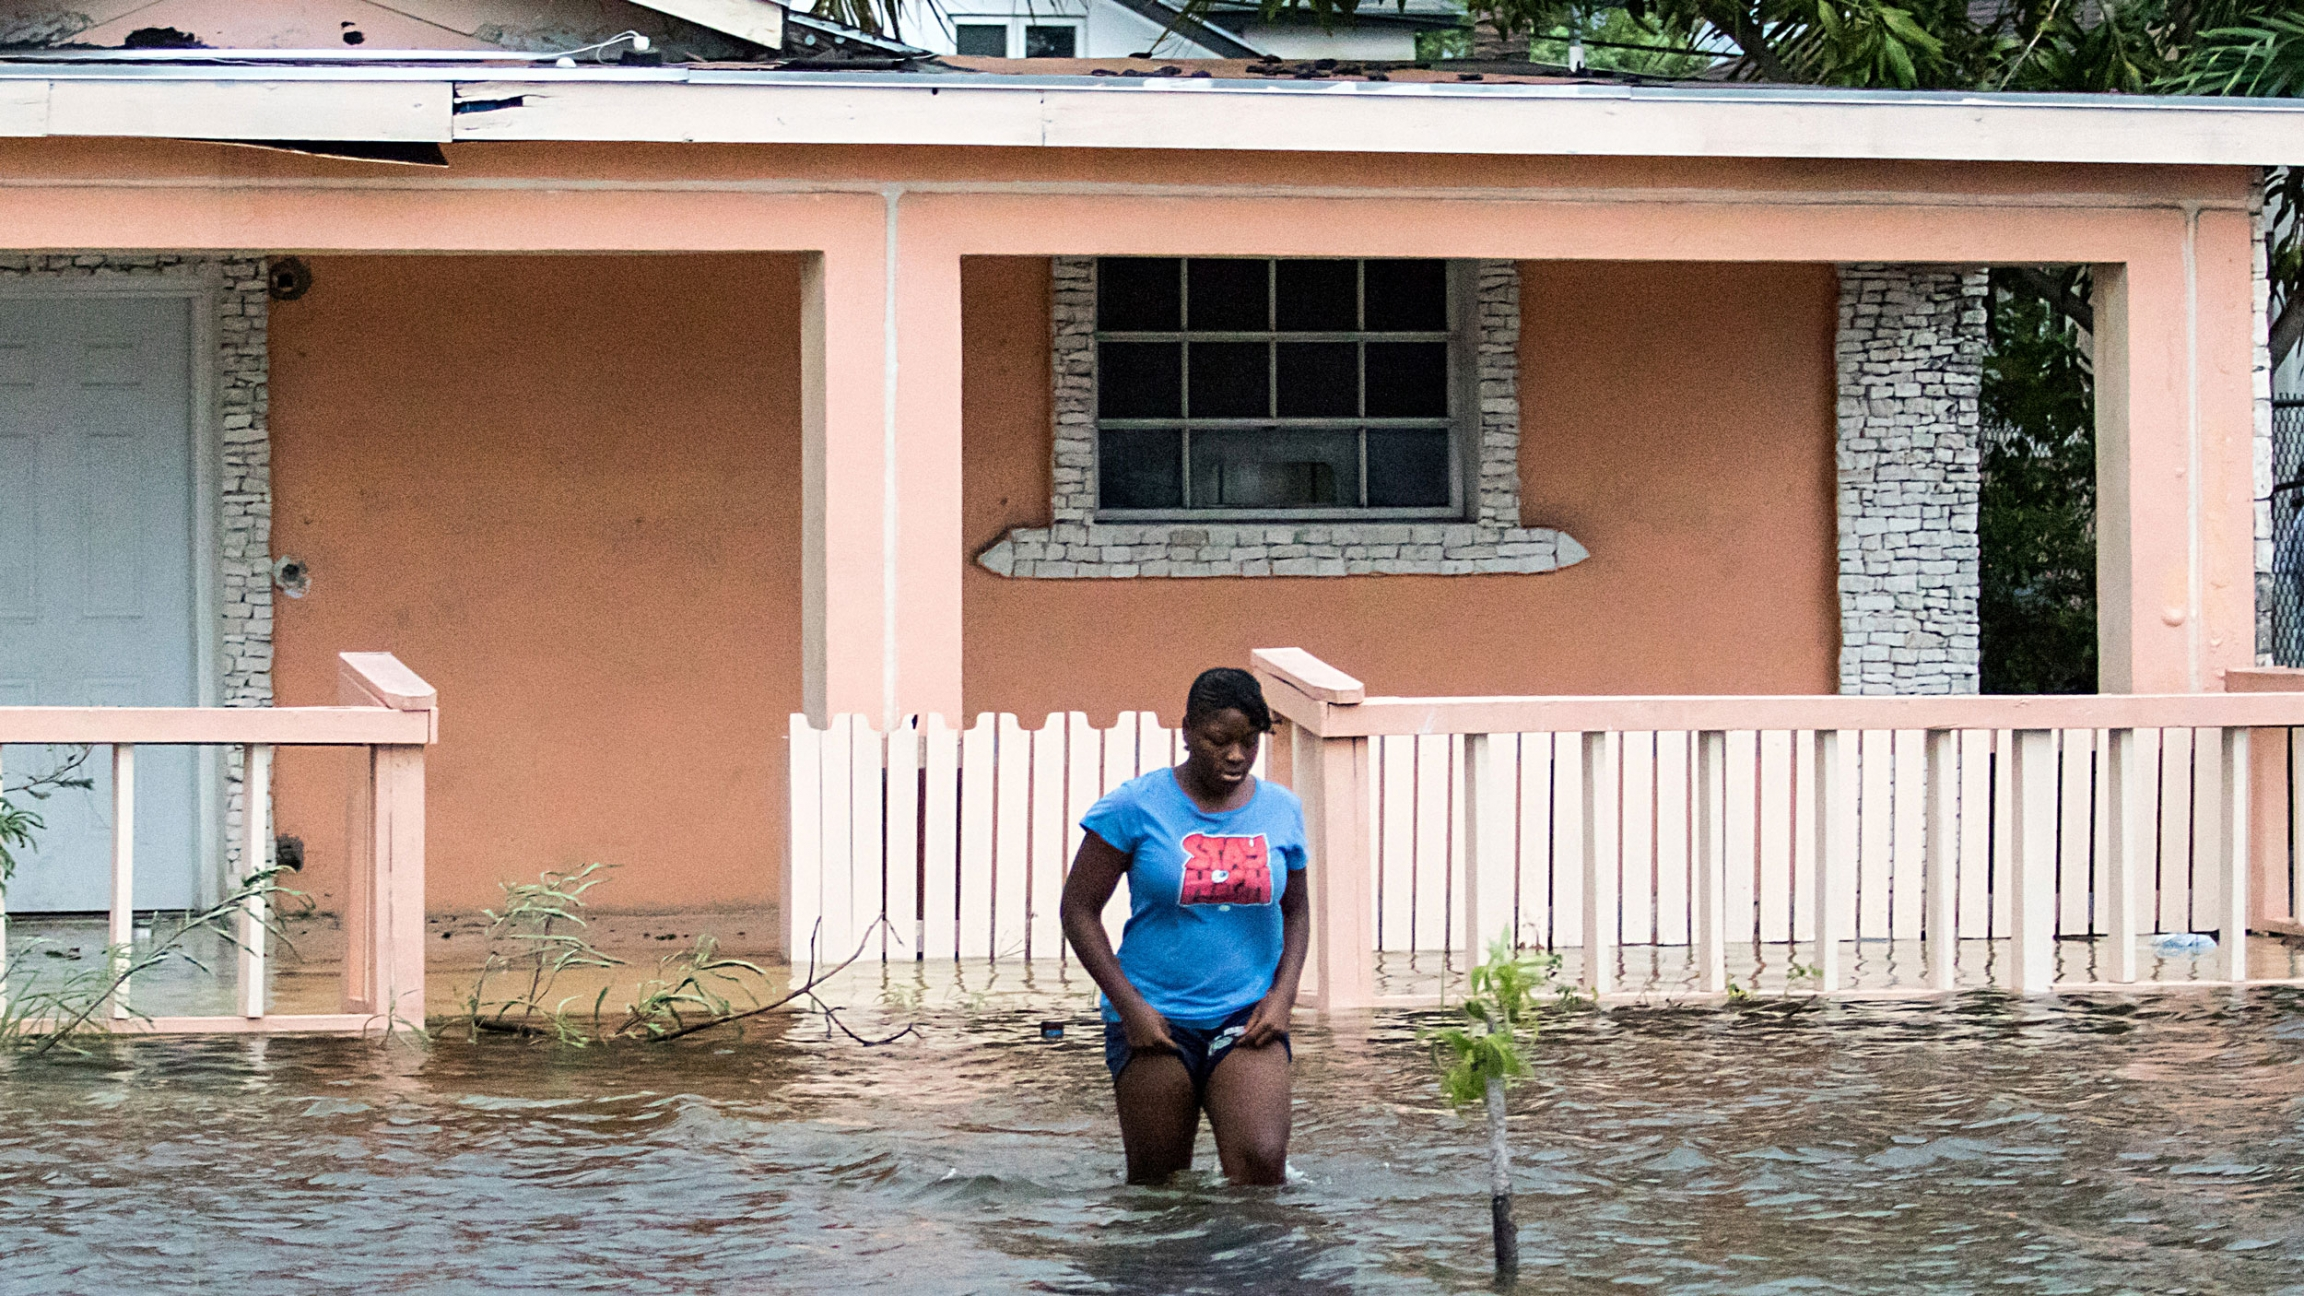 A woman is shown walking in knee-deep water in front of a peach-colored home.